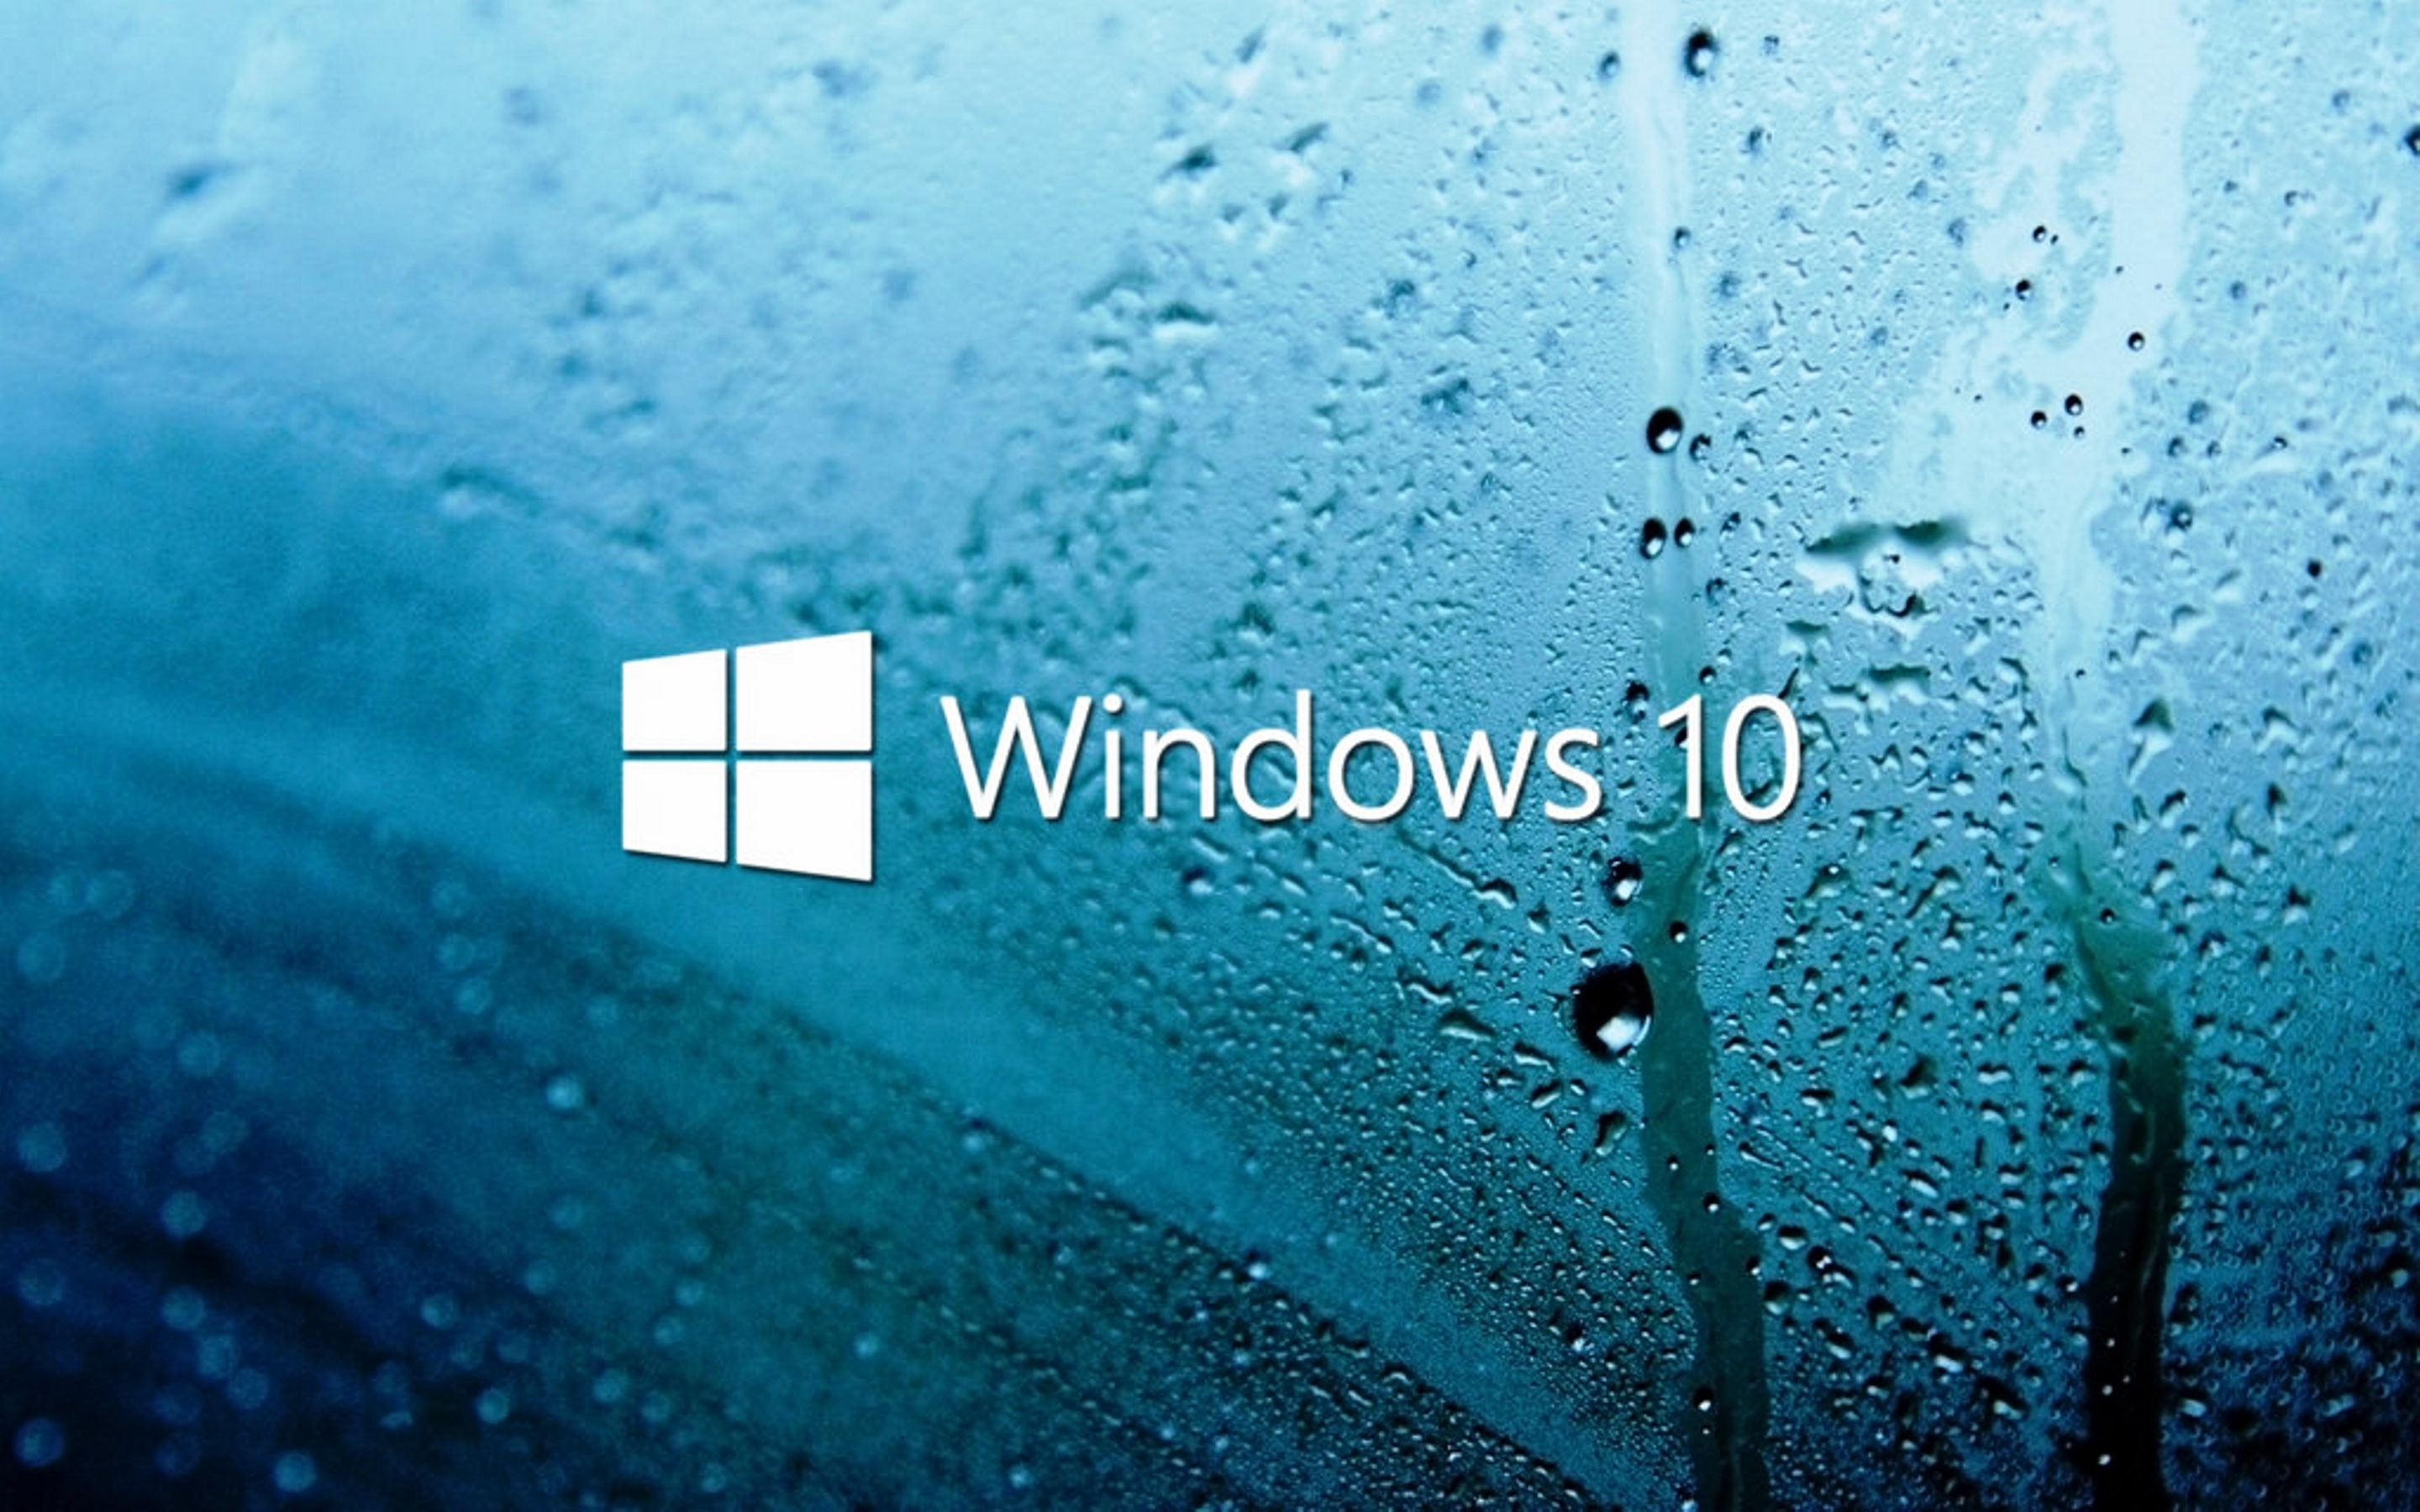 windows 10 background images, windows 10 wallpaper pack